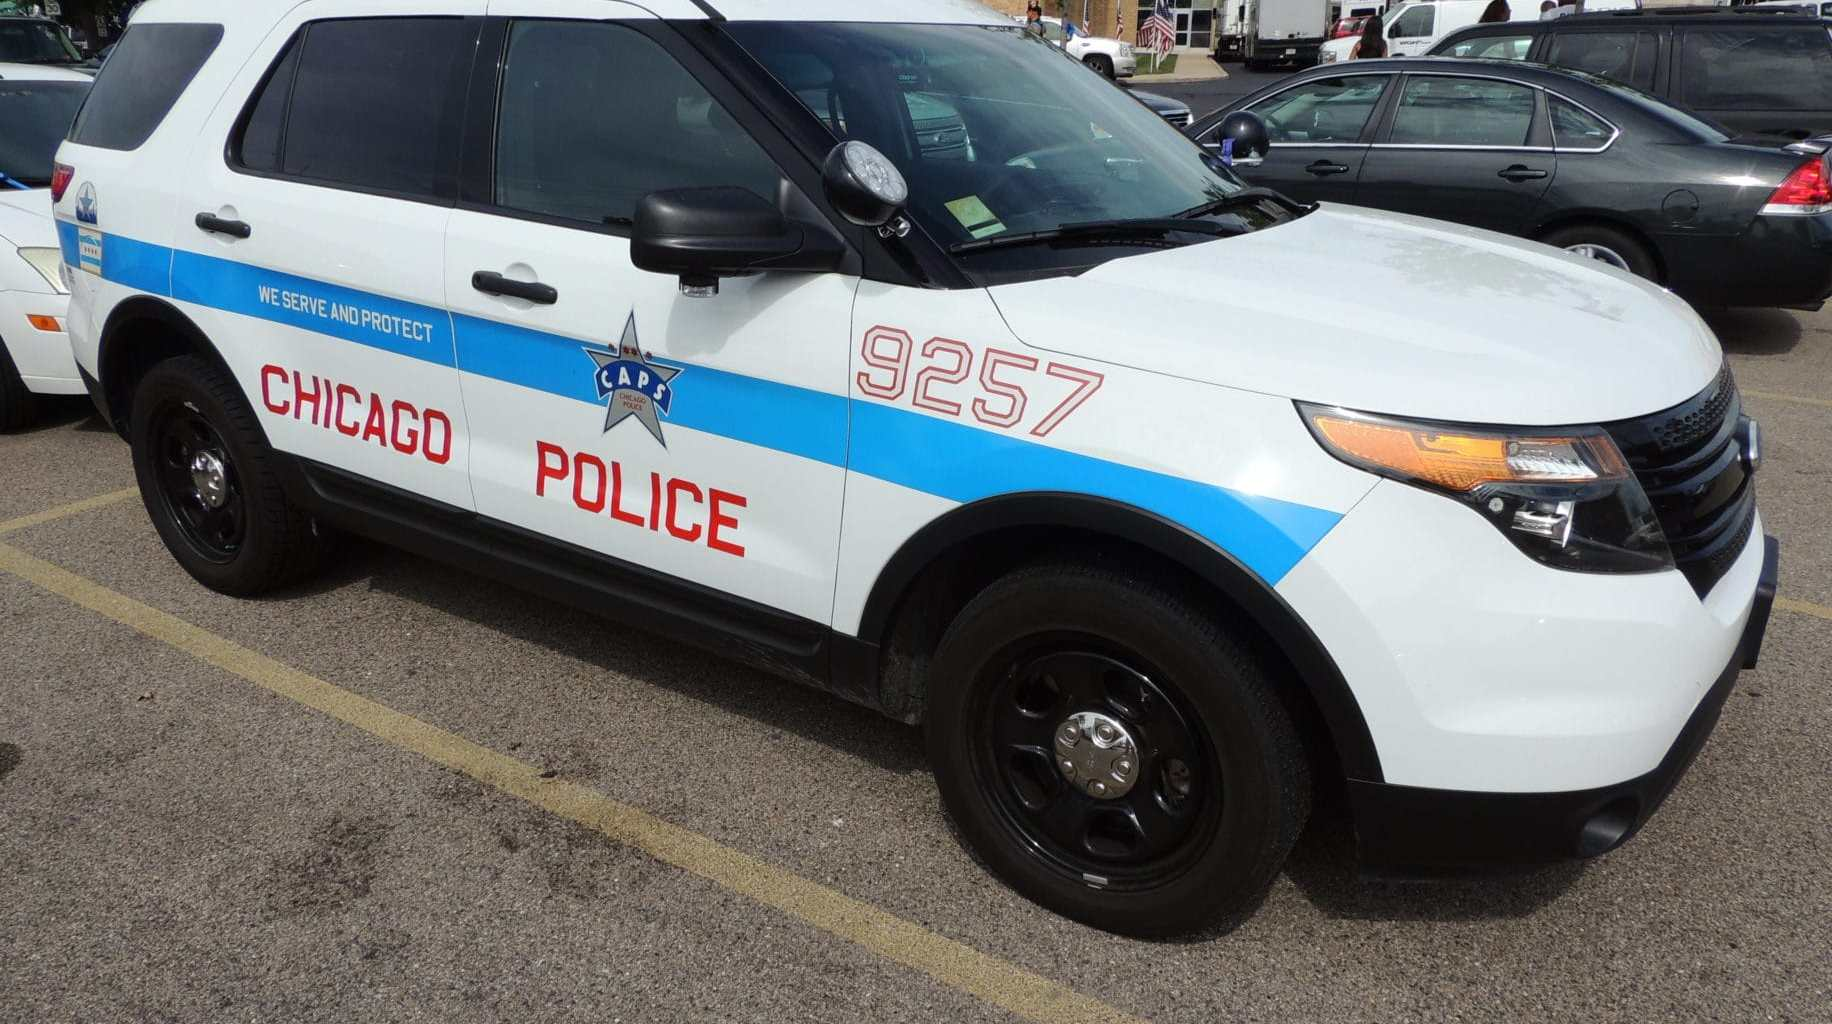 Chicago Police CAPS (Chicago Alternative Policing Strategy) vehicle. Photo credit: Asher Heimermann (CC-By-3.0)